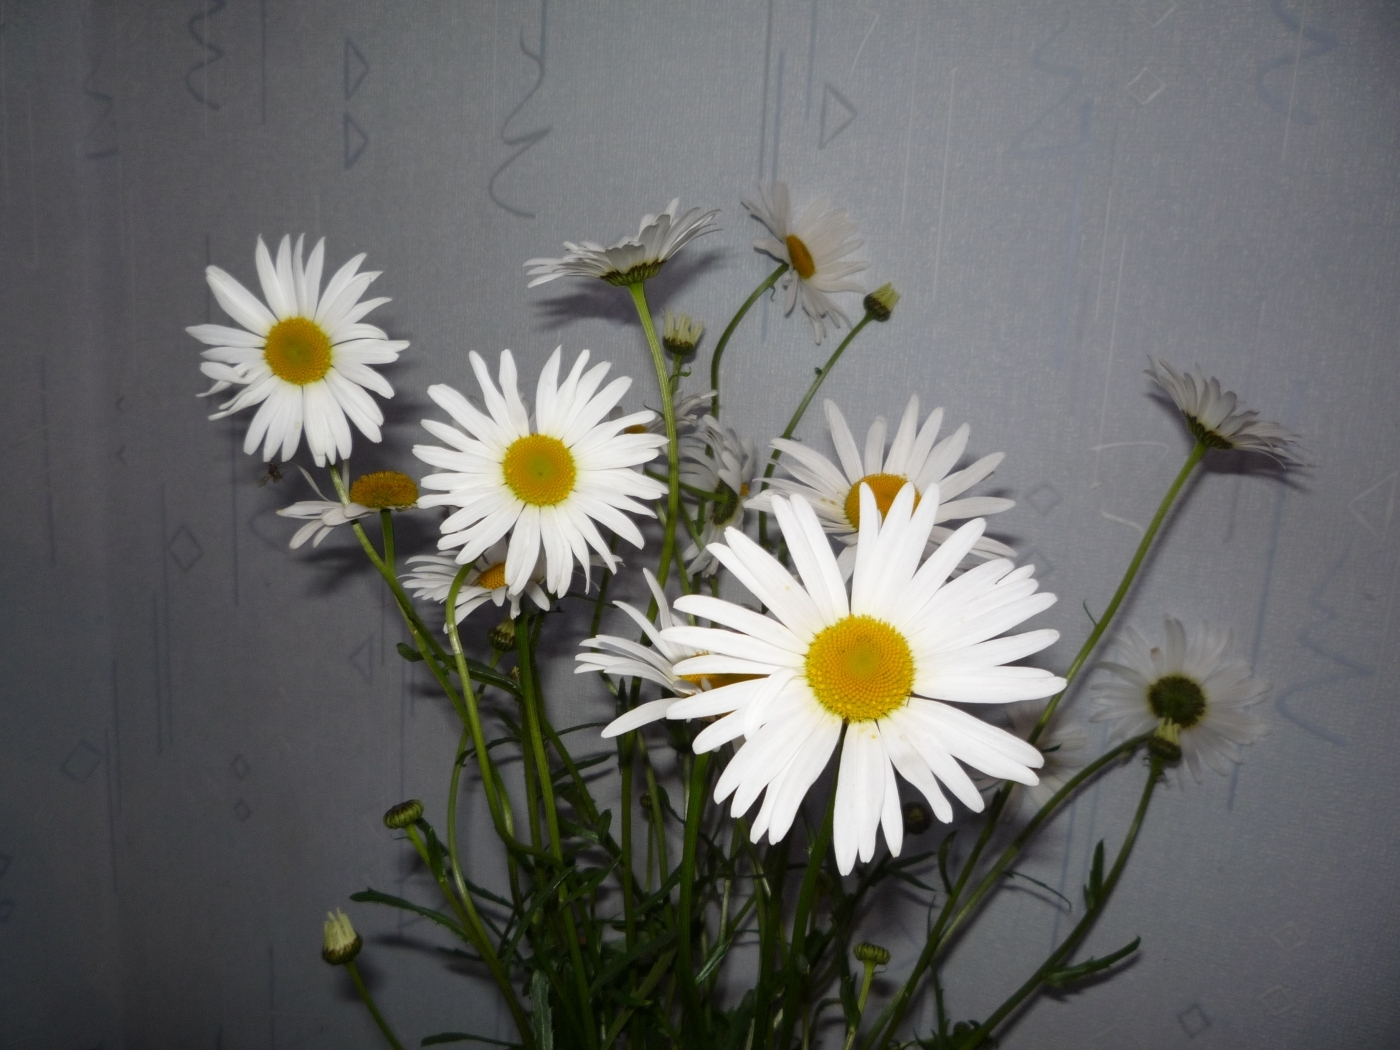 48561 download wallpaper Plants, Flowers, Camomile, Bouquets screensavers and pictures for free